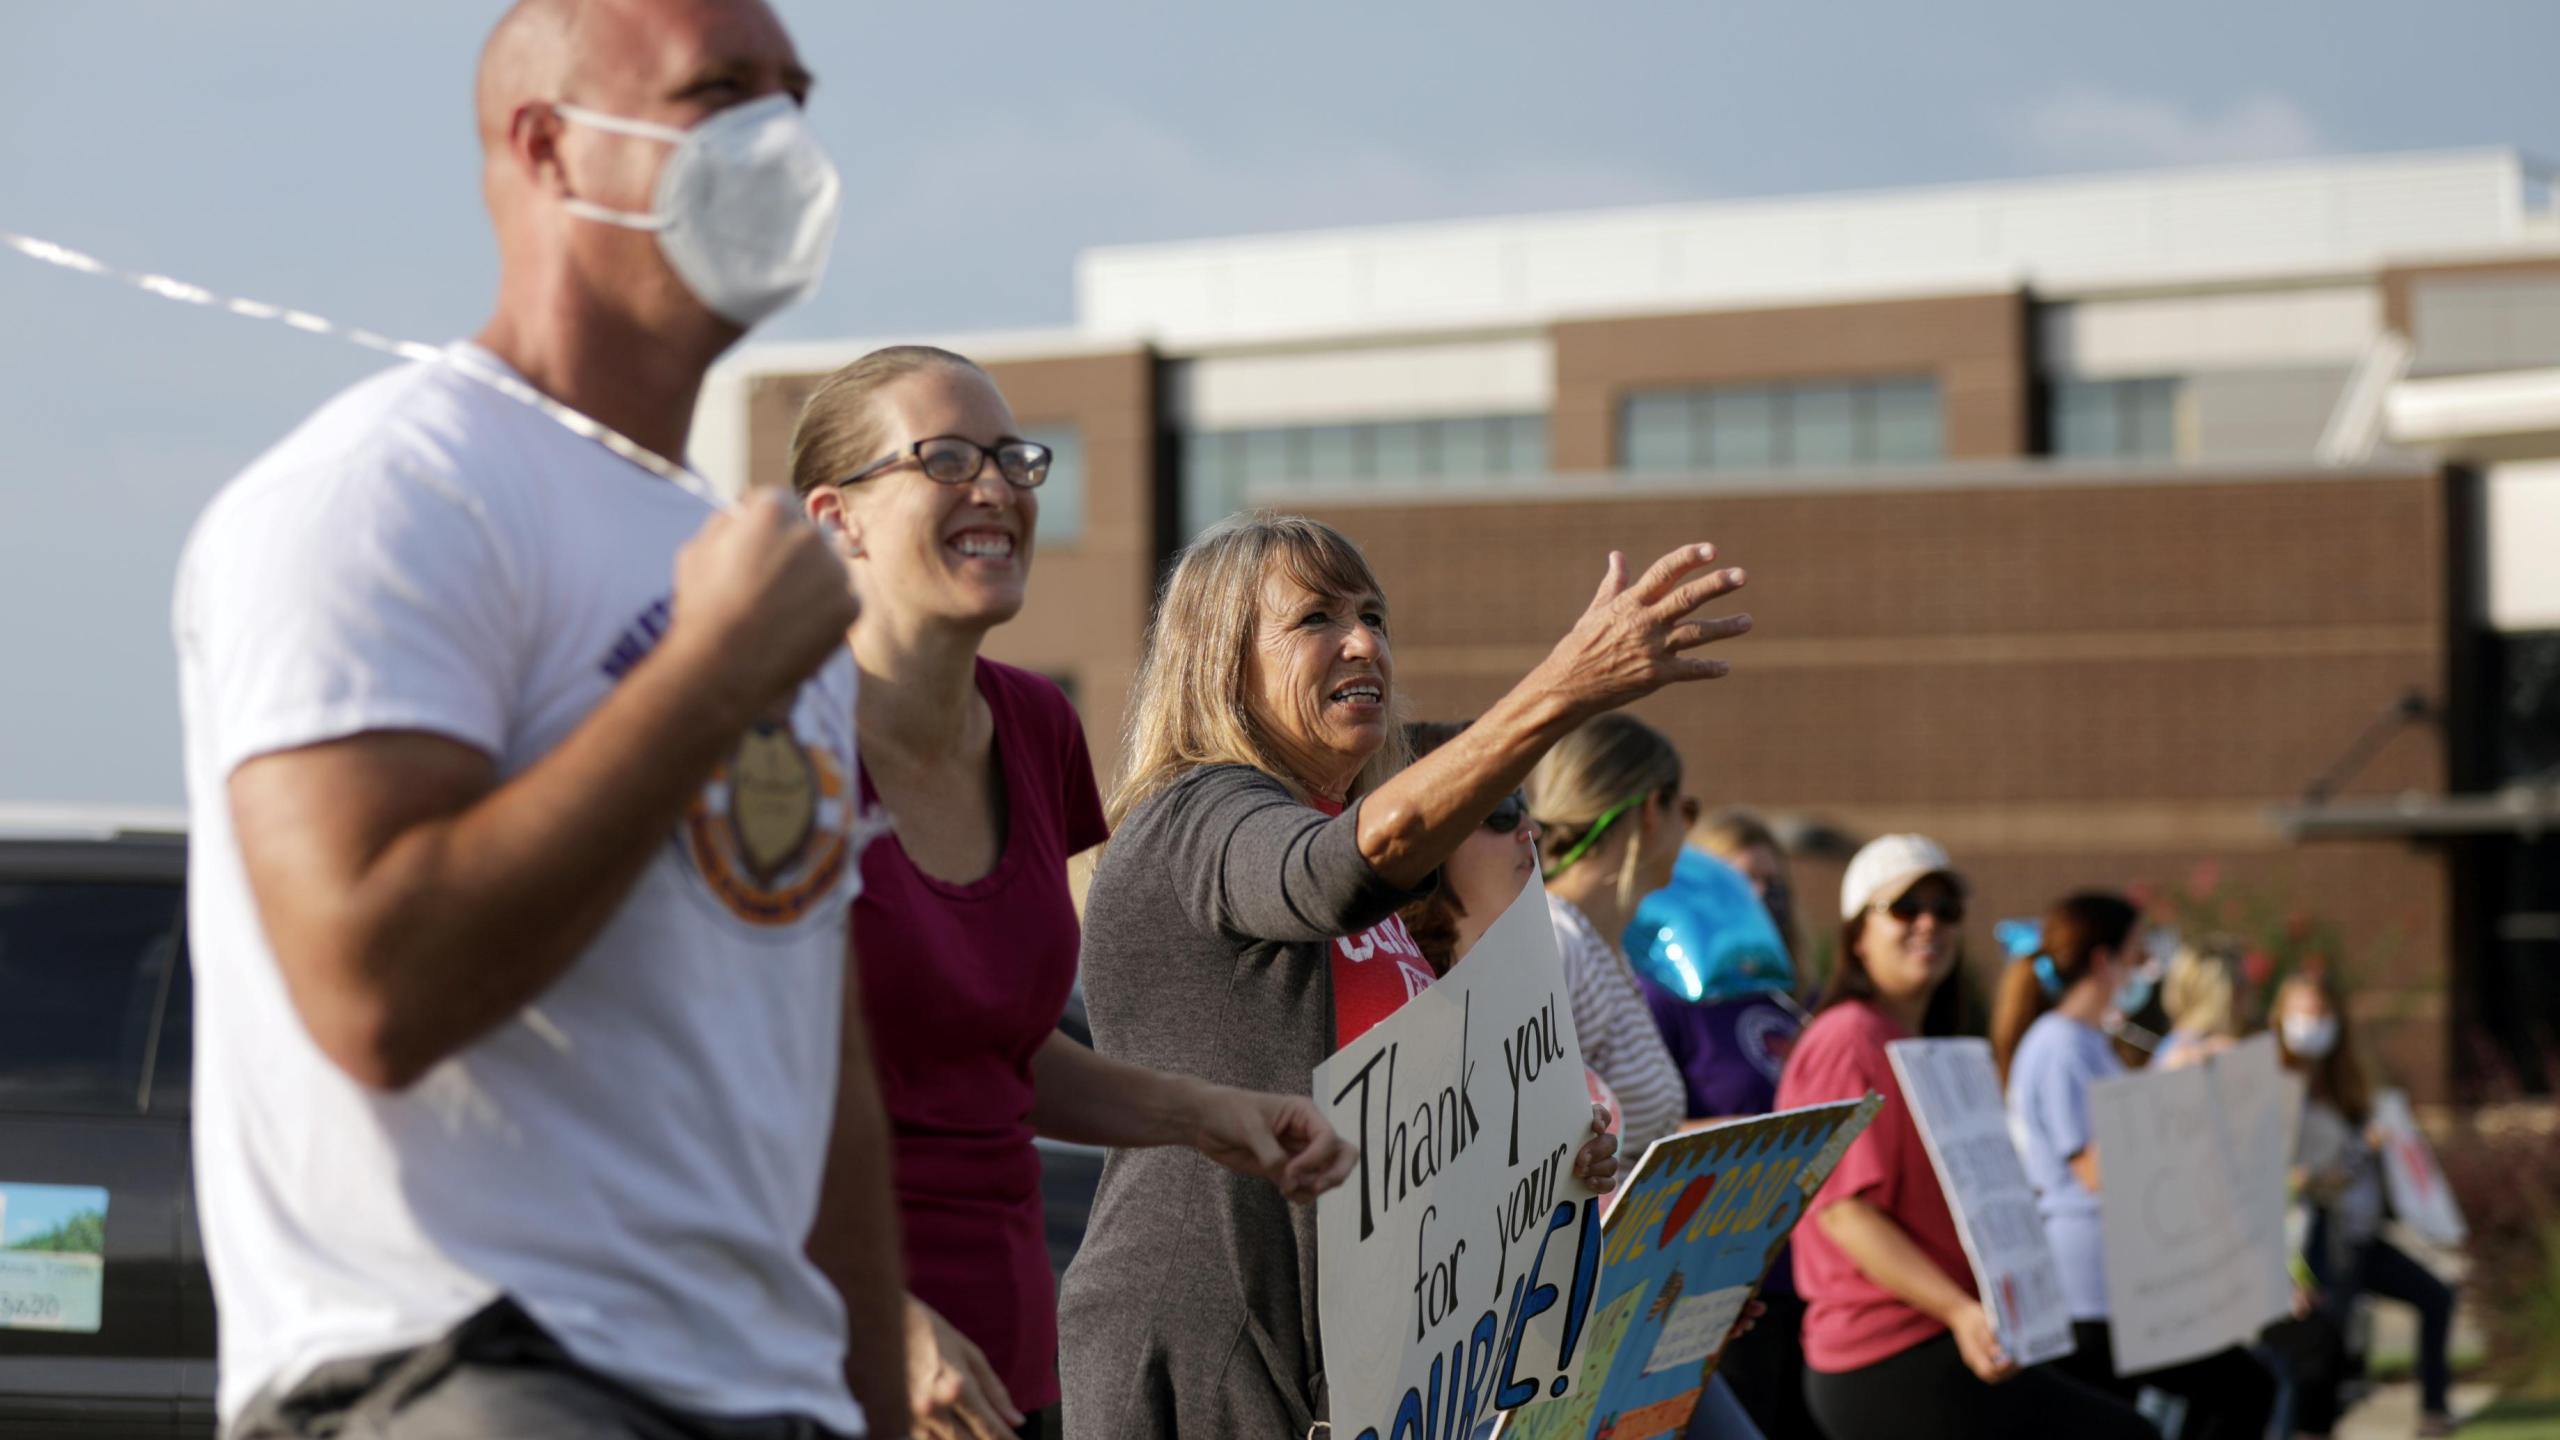 Supporters of the Cherokee County School District's decision to reopen schools cheer on faculty arriving to the district's headquarters in Canton, Georgia. Credit: Dustin Chambers/Reuters